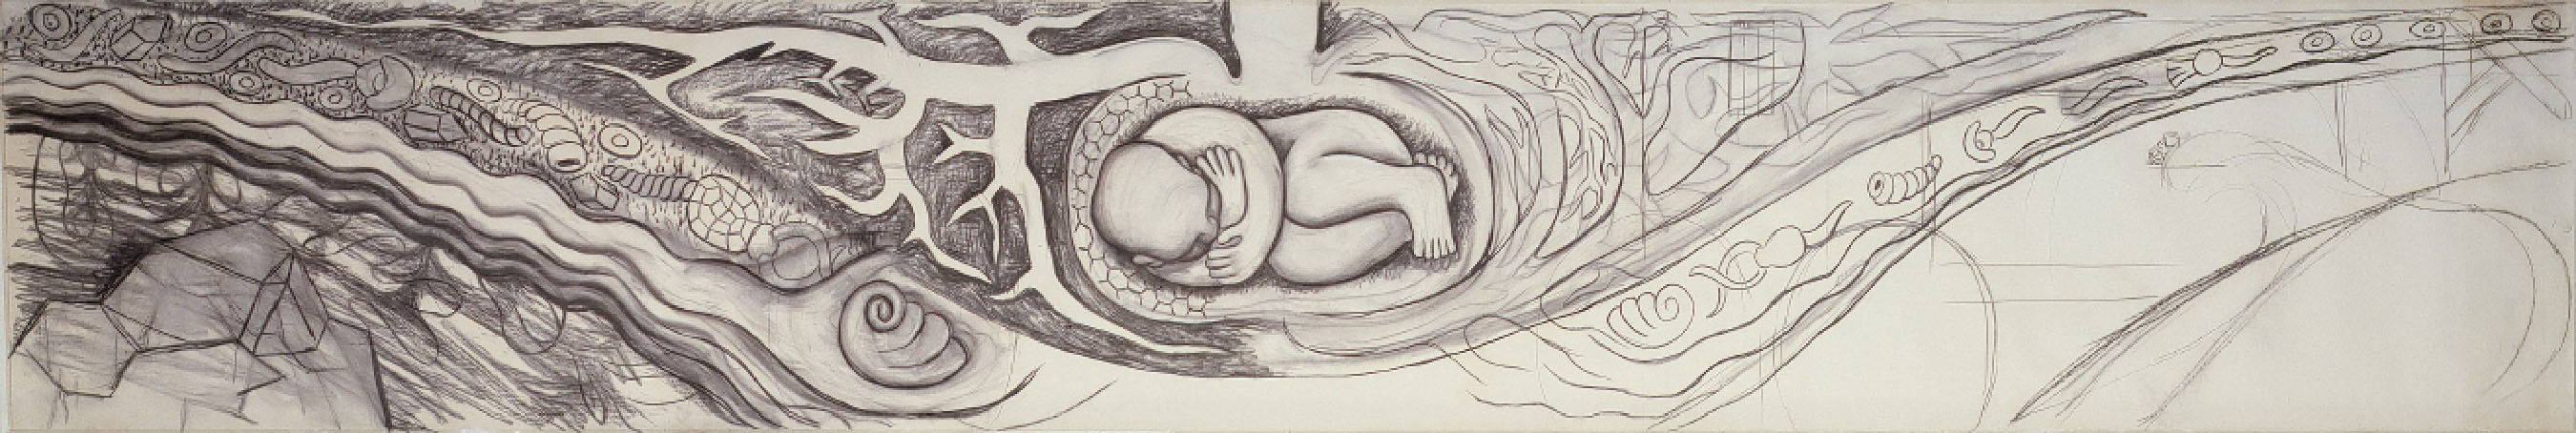 . Preparatory Drawing for Infant in the Bulb of a Plant (Detroit Industry east wall), Diego Rivera, 1932, charcoal with brown pigment over light charcoal. Detroit Institute of Arts